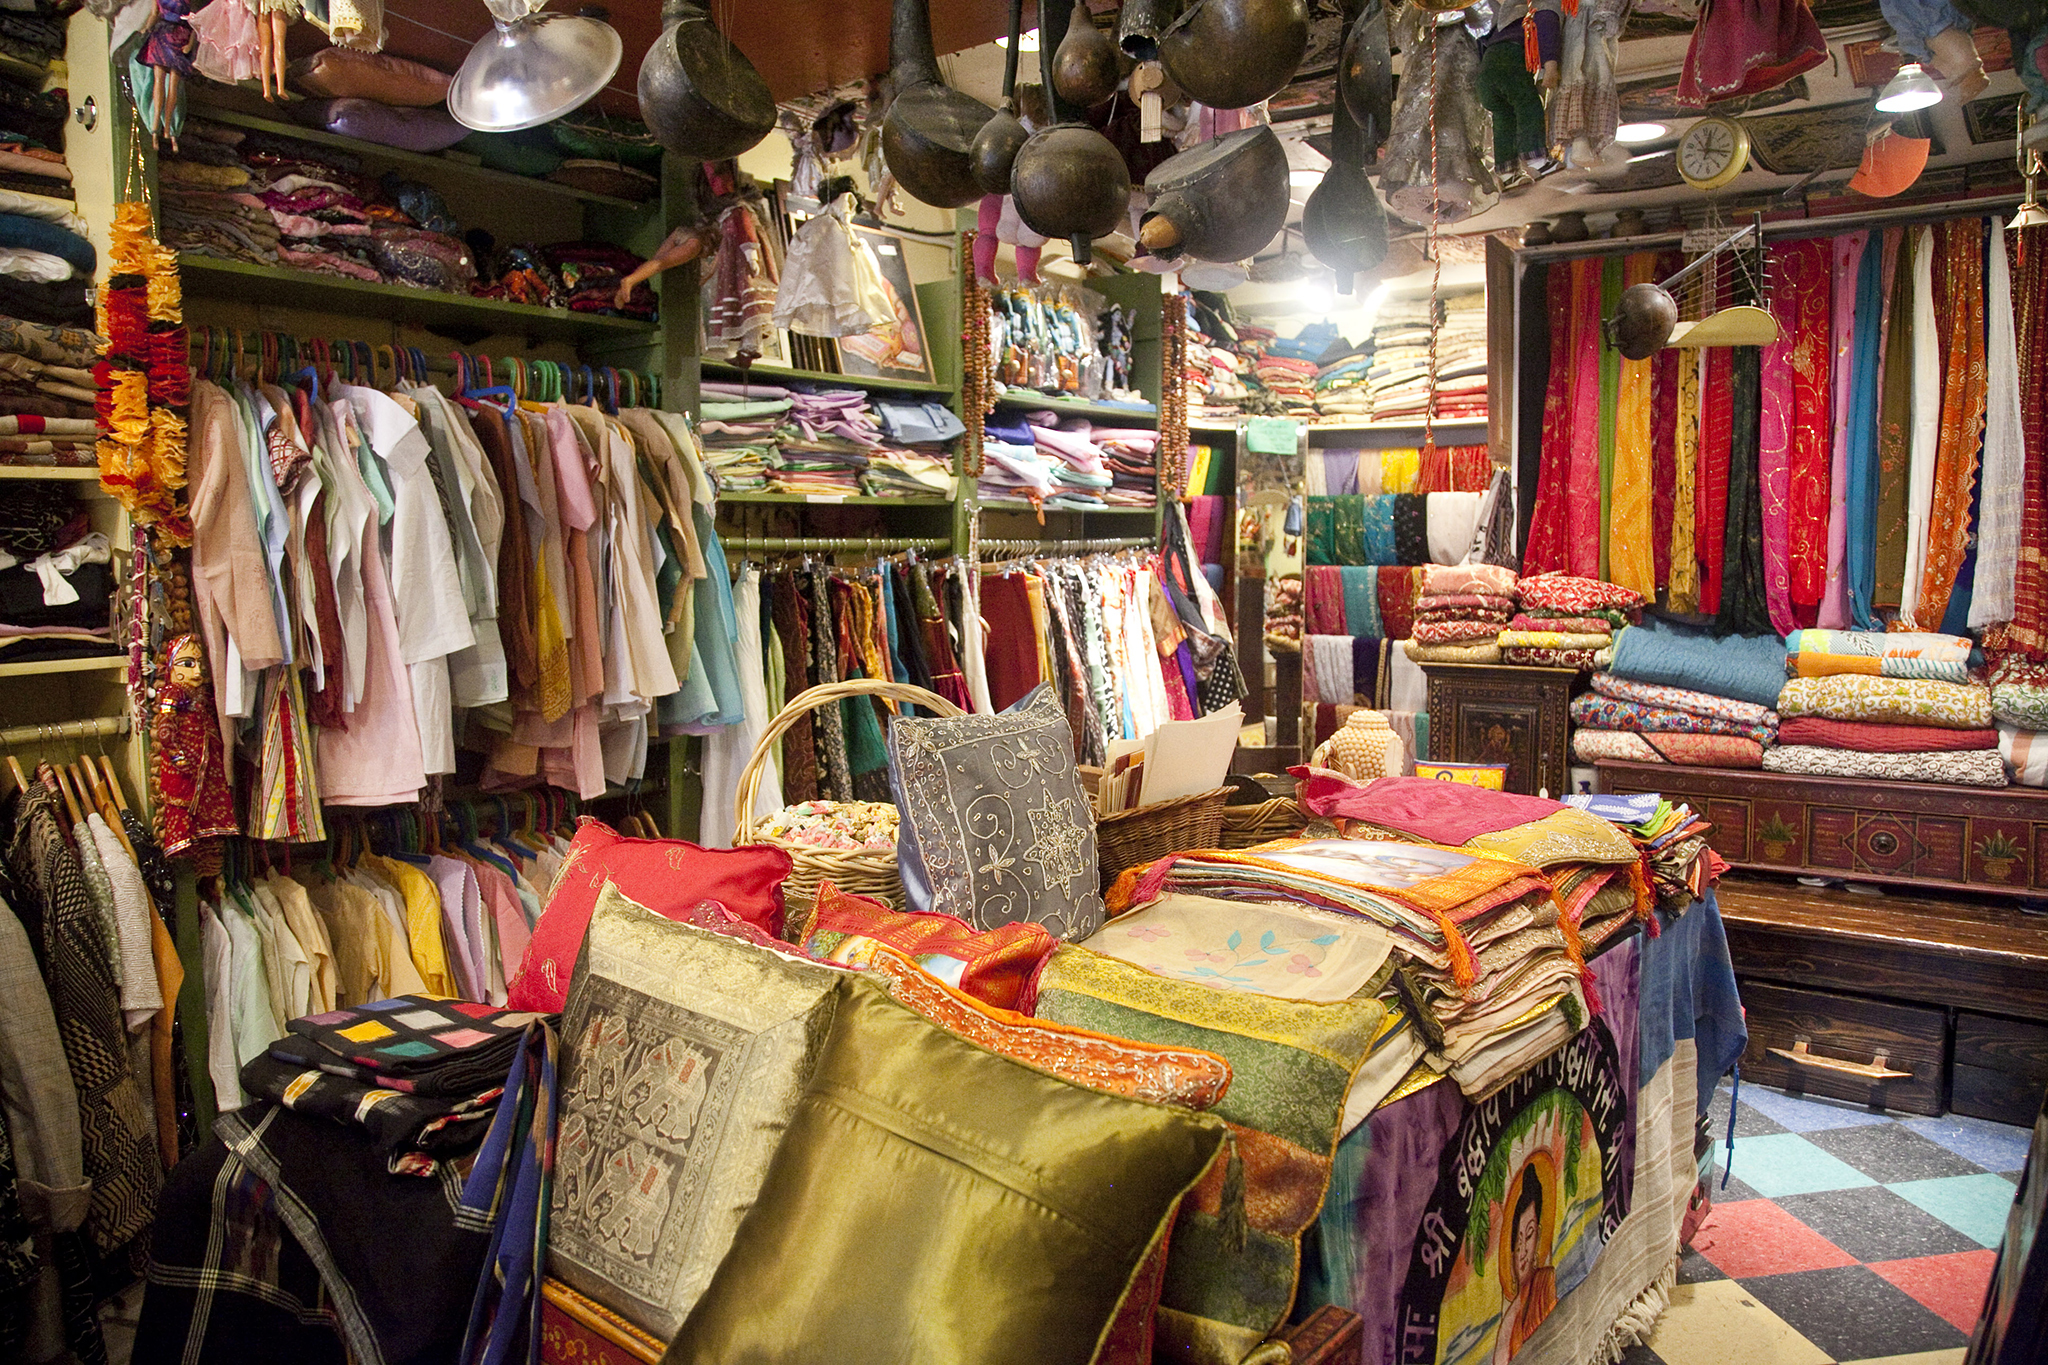 A store selling bangles and Pakistani and Indian clothing in Jackson Heights, a predominantly South